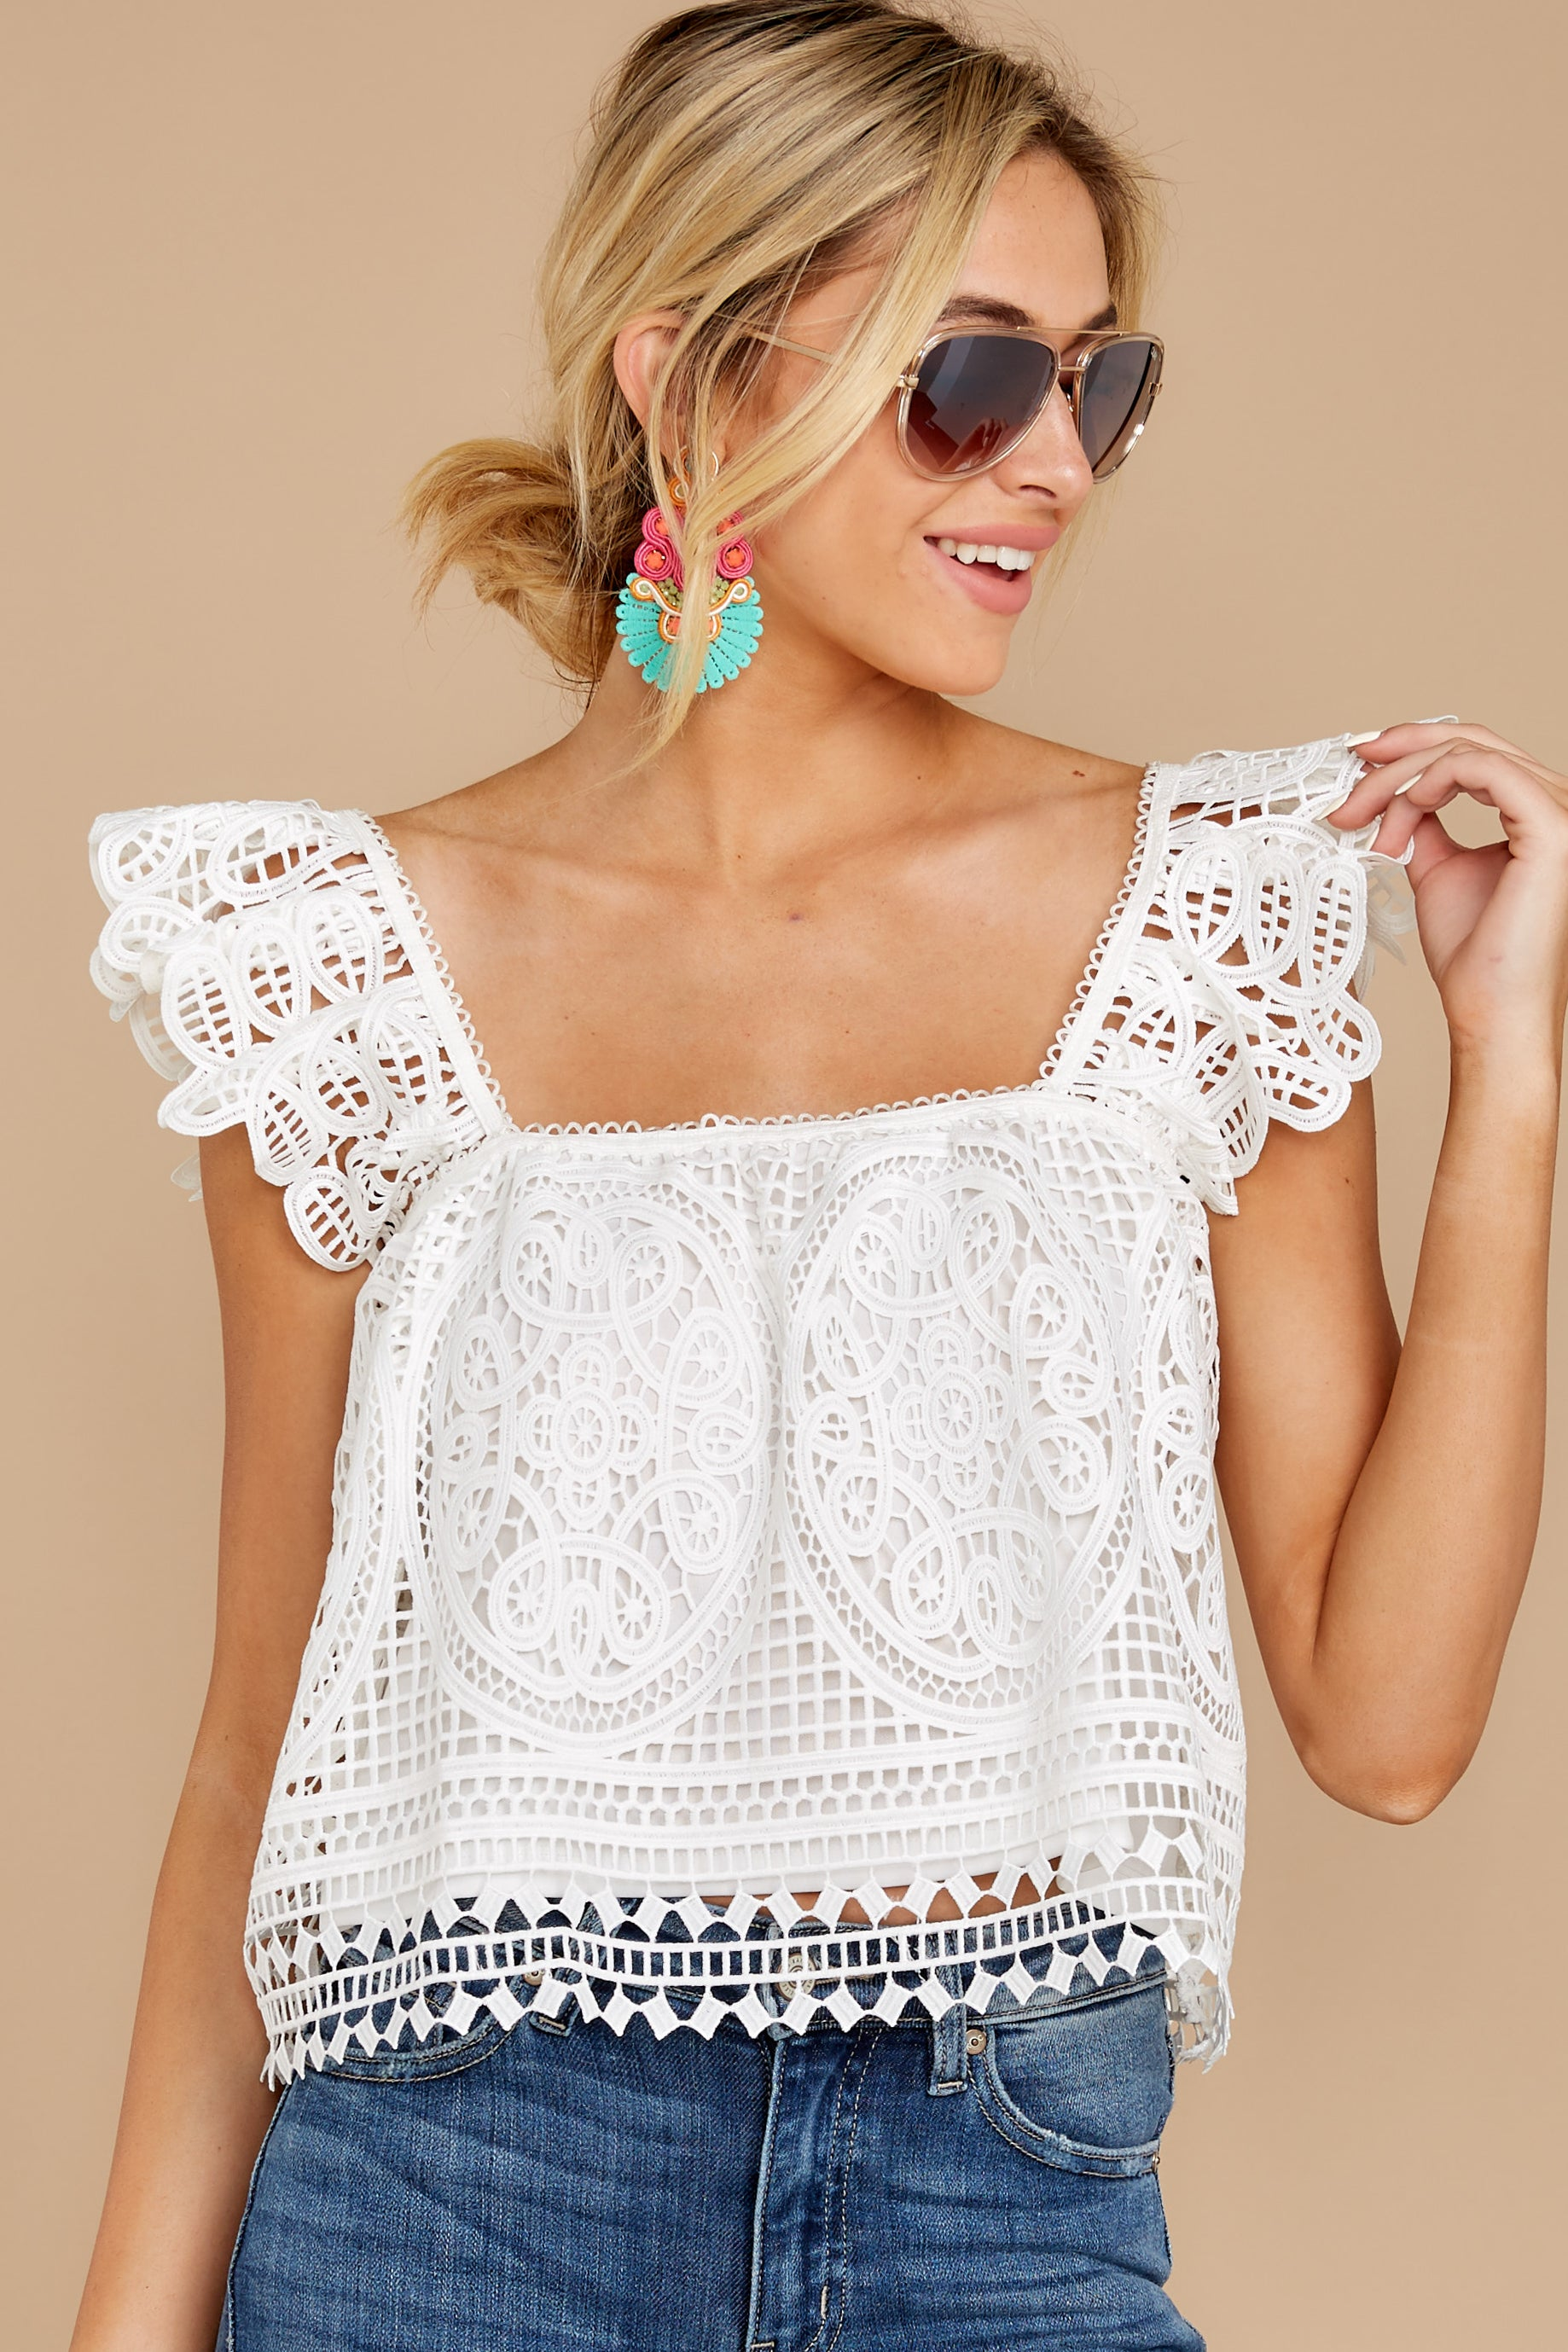 7 Right Time Right Place White Lace Top at reddress.com